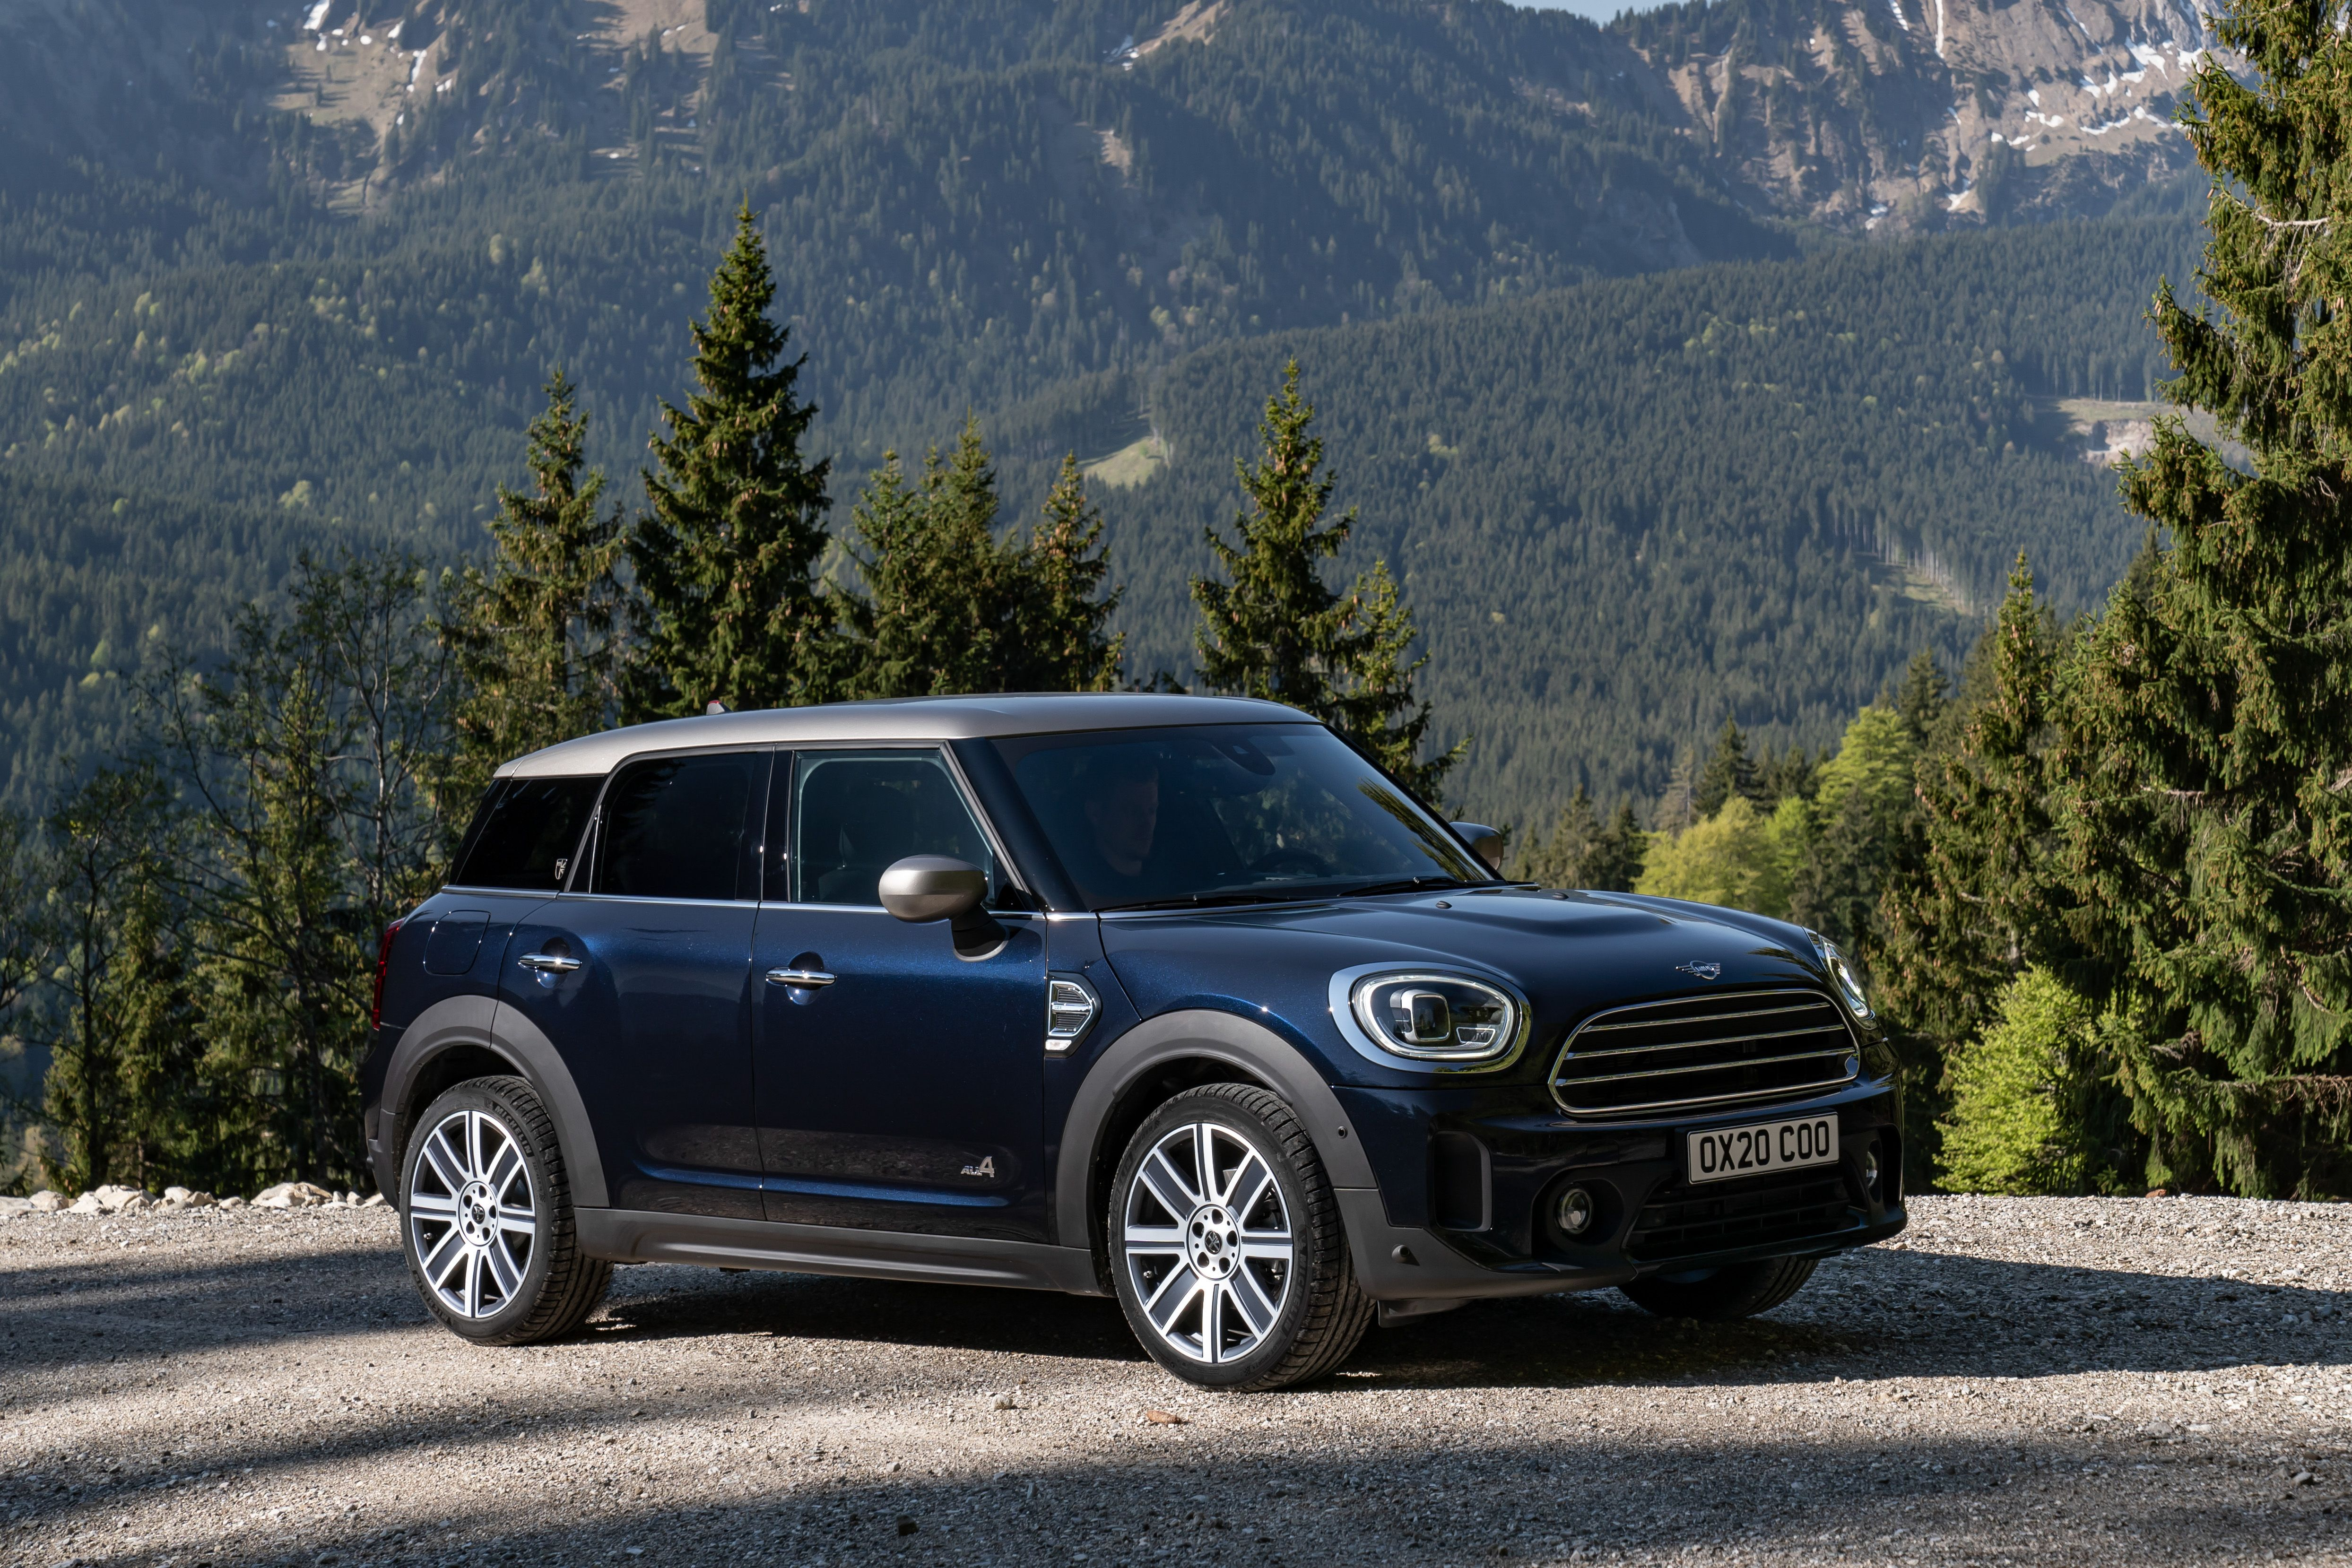 2021 Mini Cooper Countryman Review Pricing And Specs